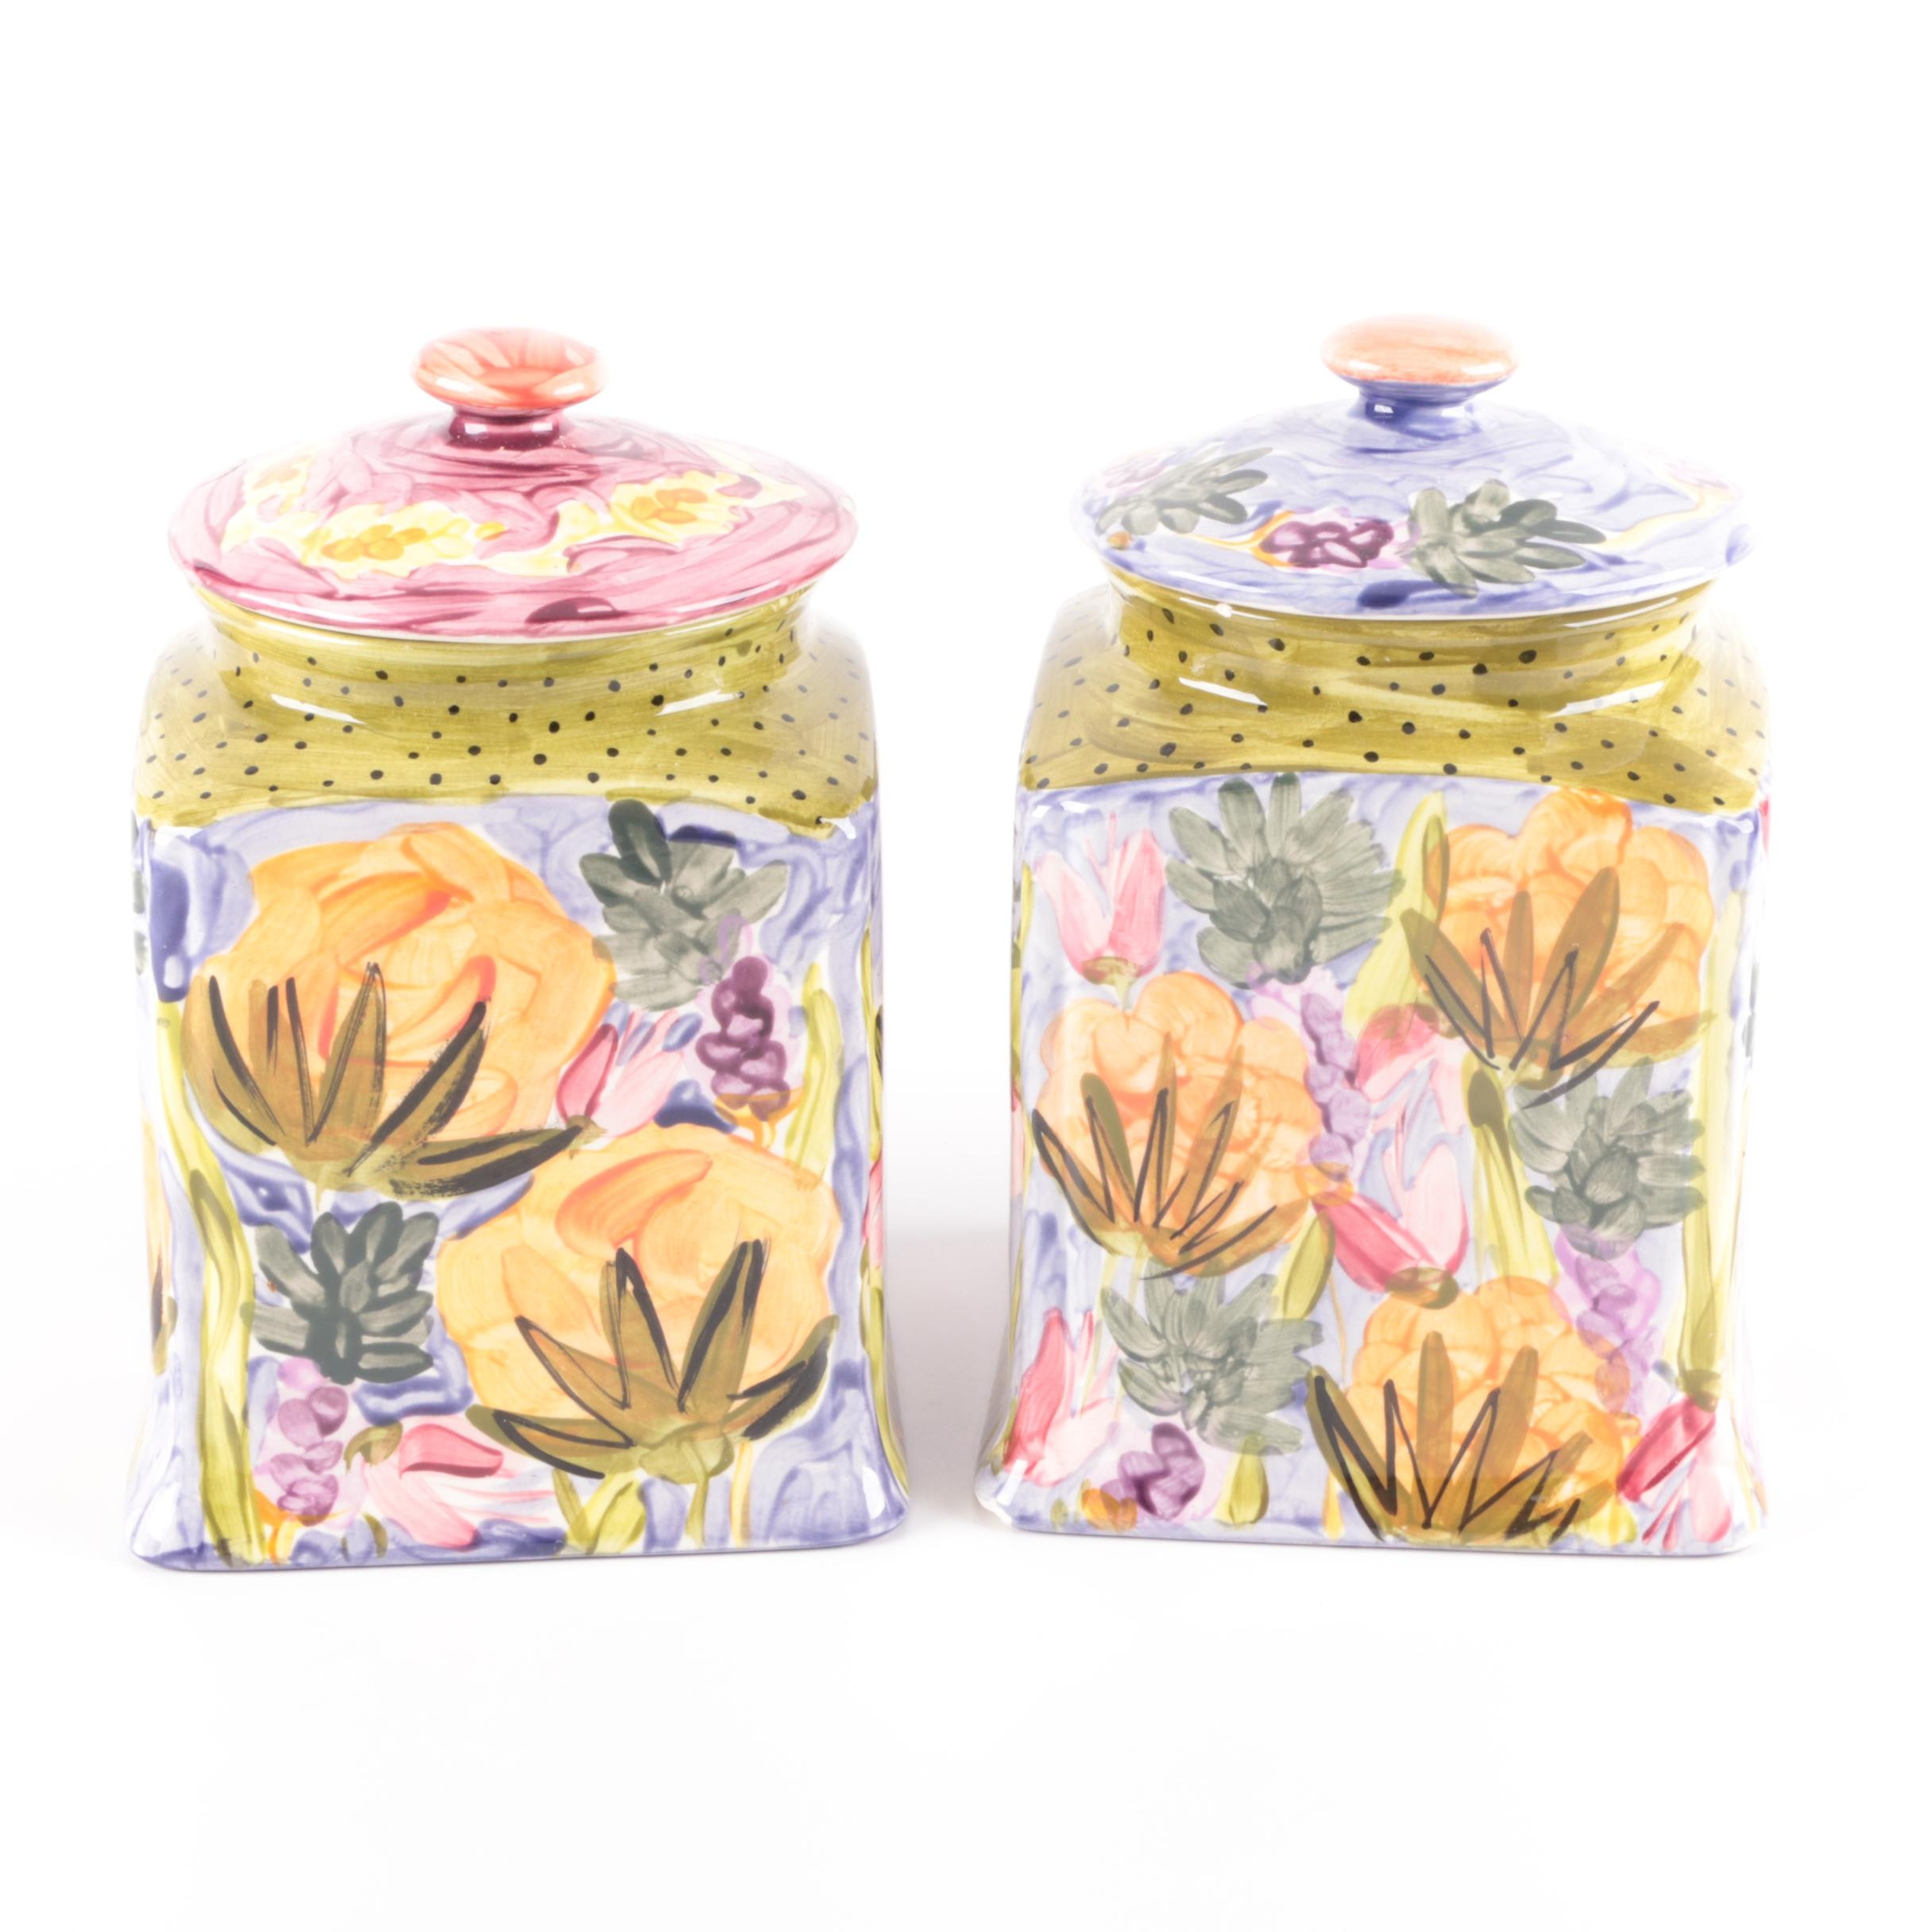 Fiasco Adams Hand Painted Ceramic Canisters